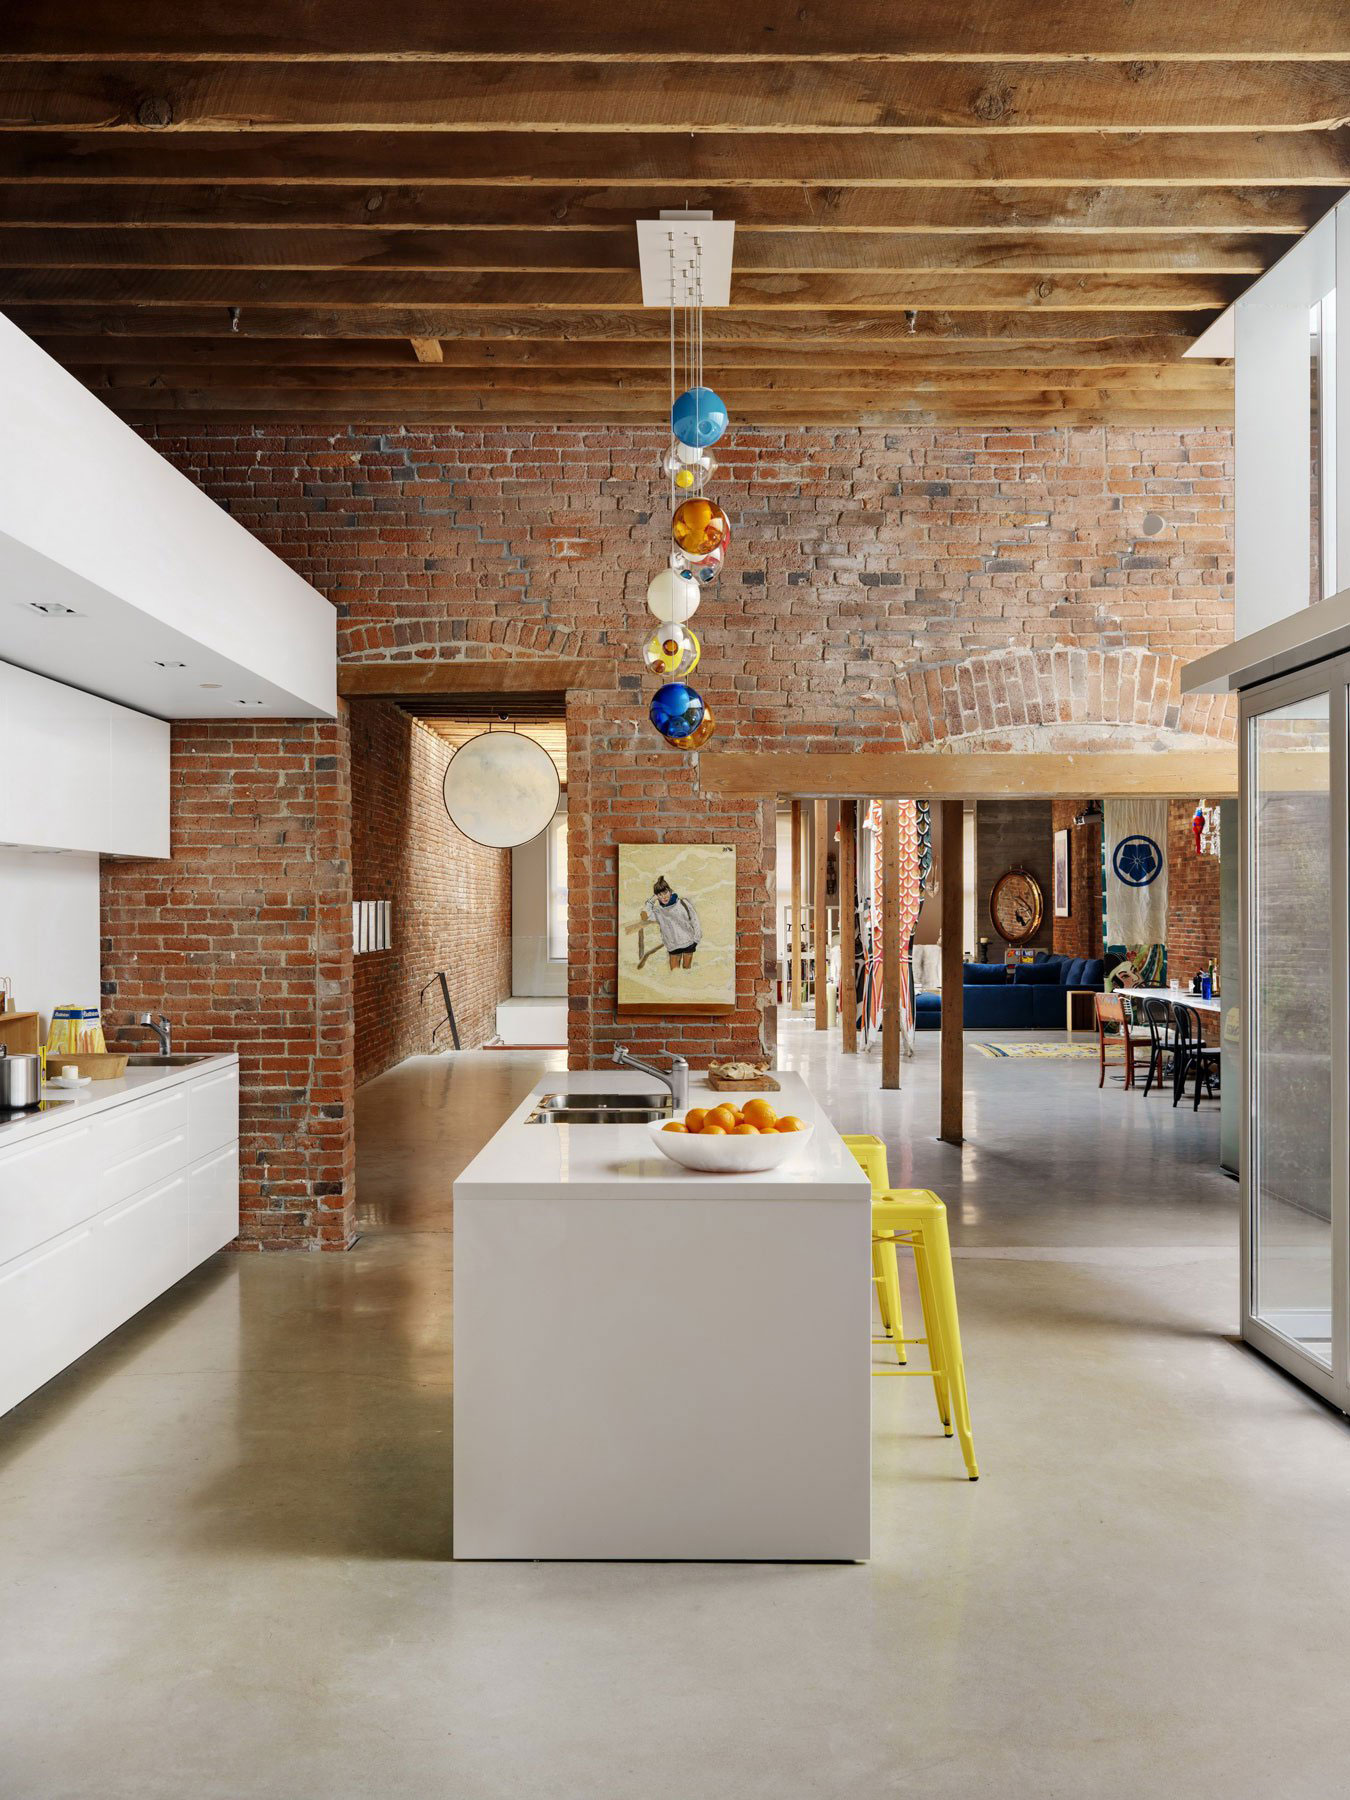 46 Water Street Heritage Building by Omer Arbel | Yellowtrace